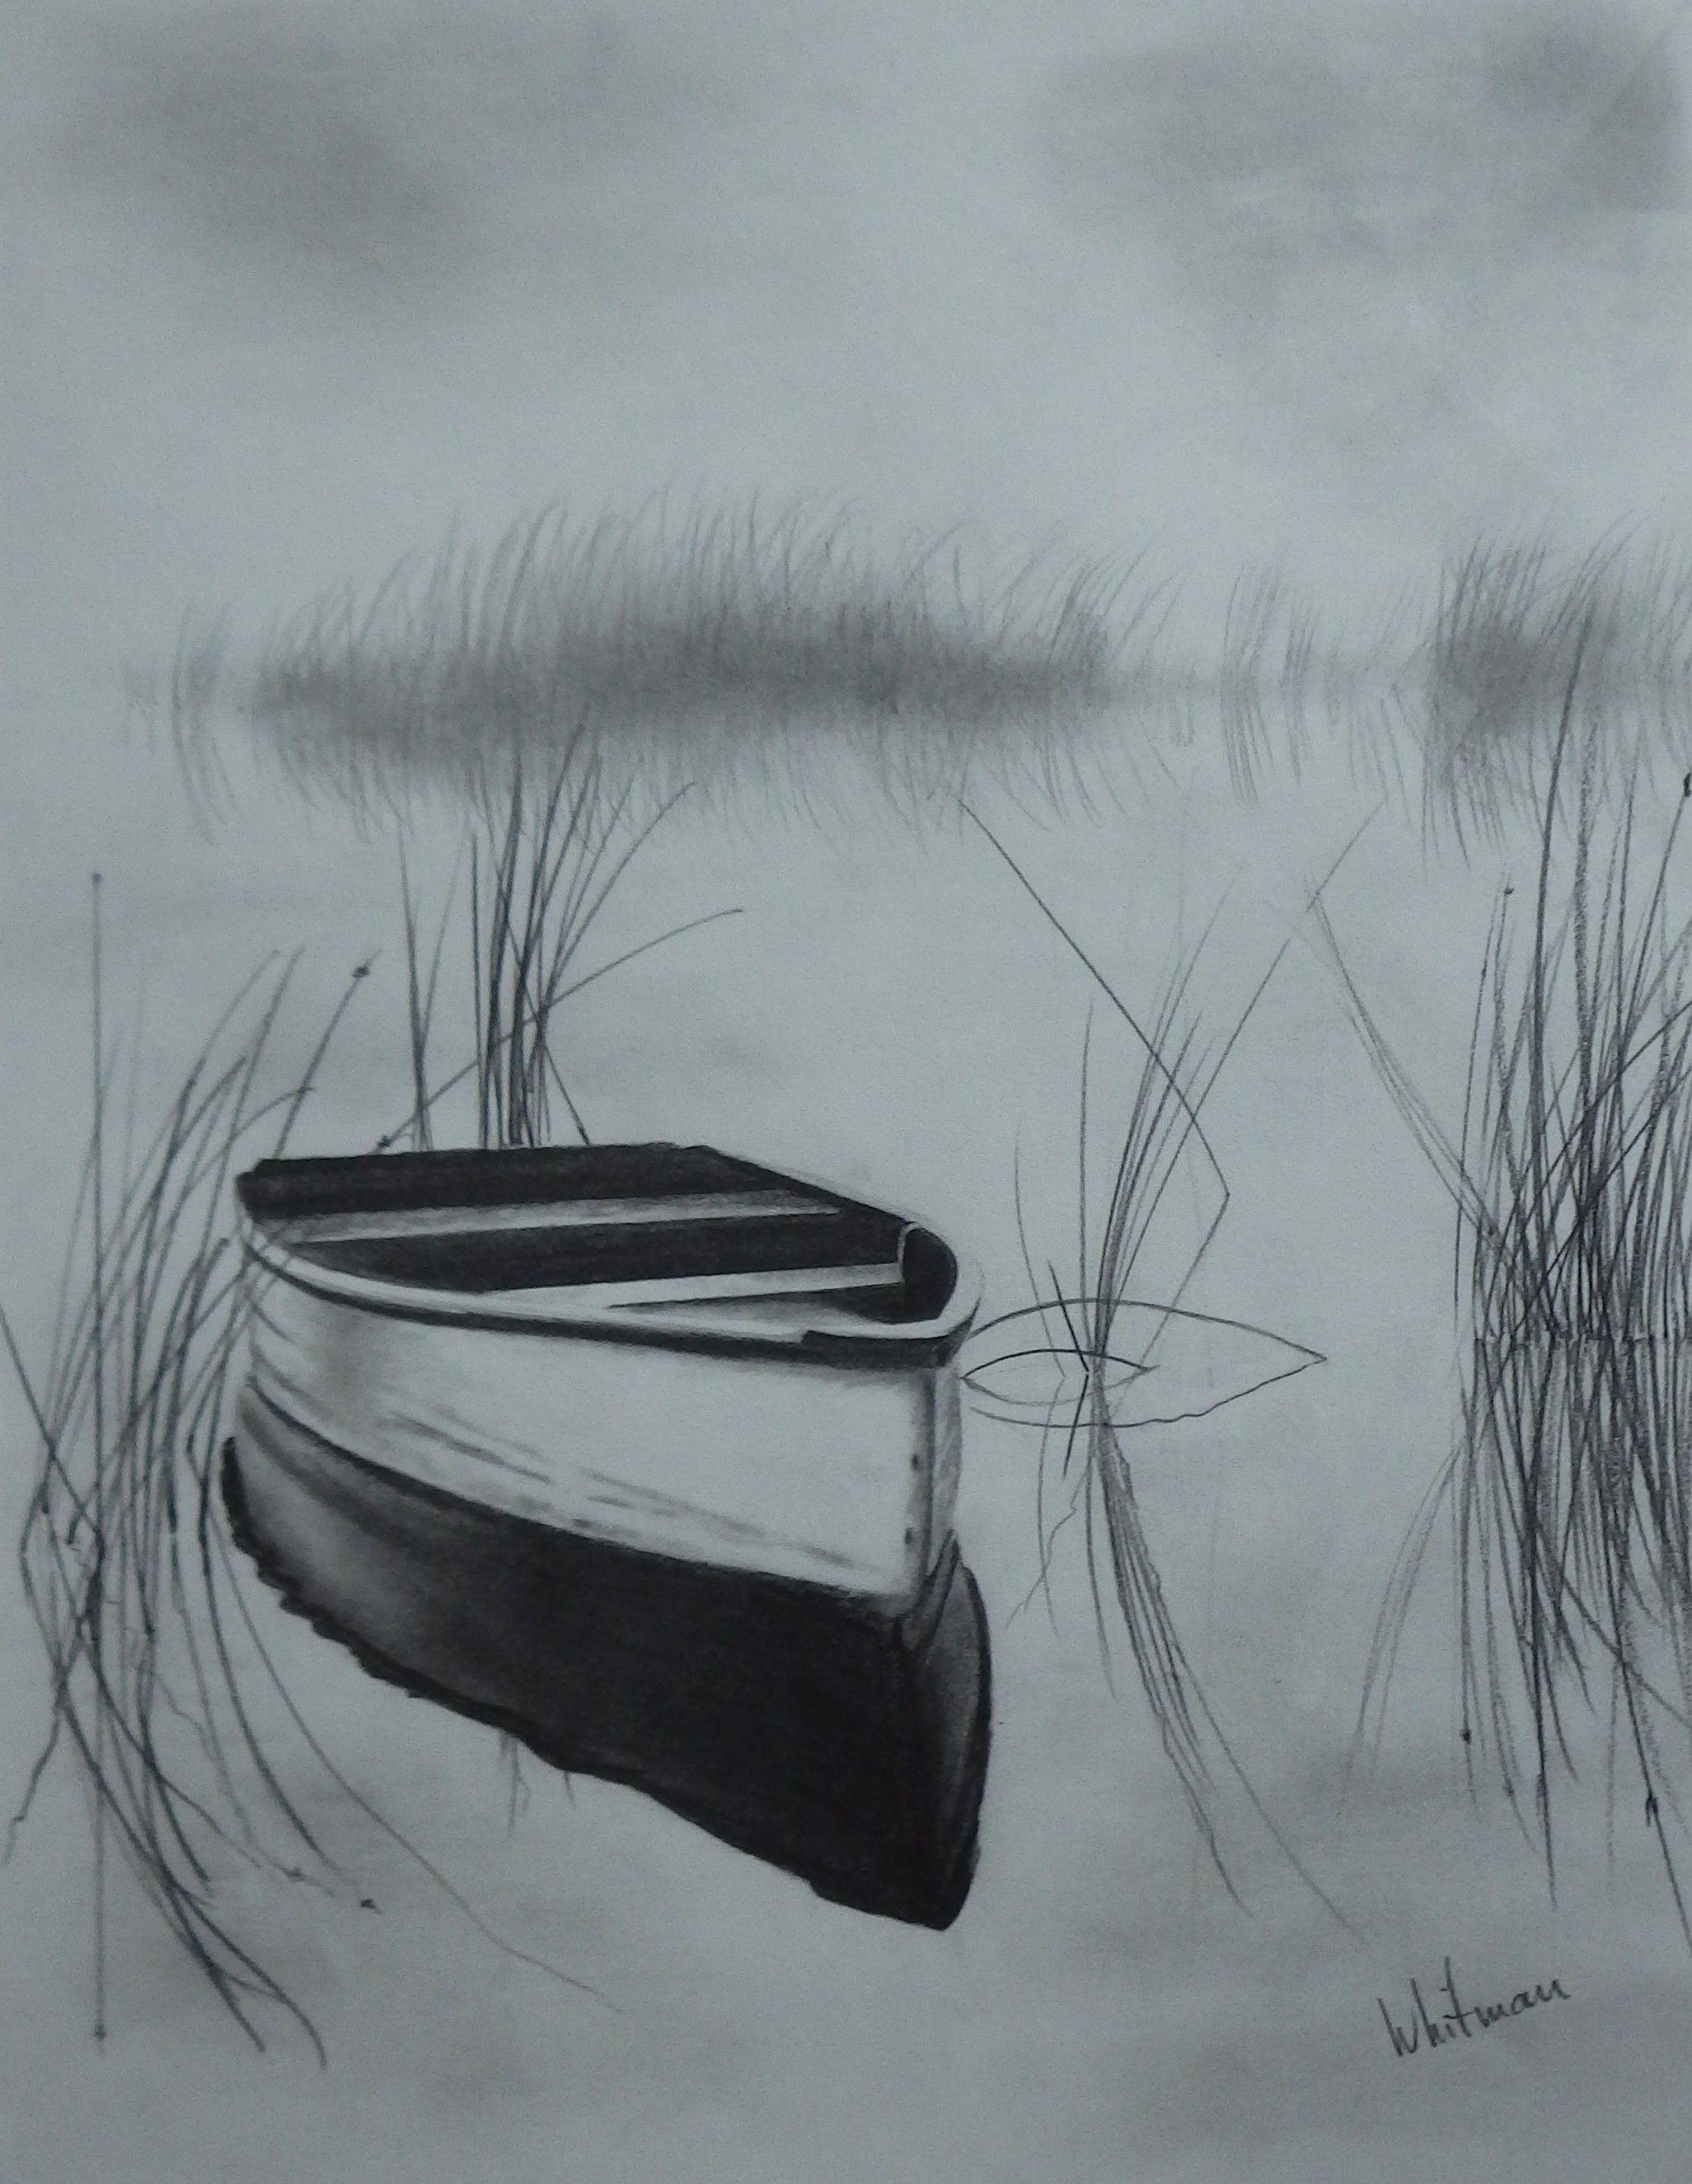 Misty row boat on the lake reflections sketch original art graphite pencil drawing by elena whitman